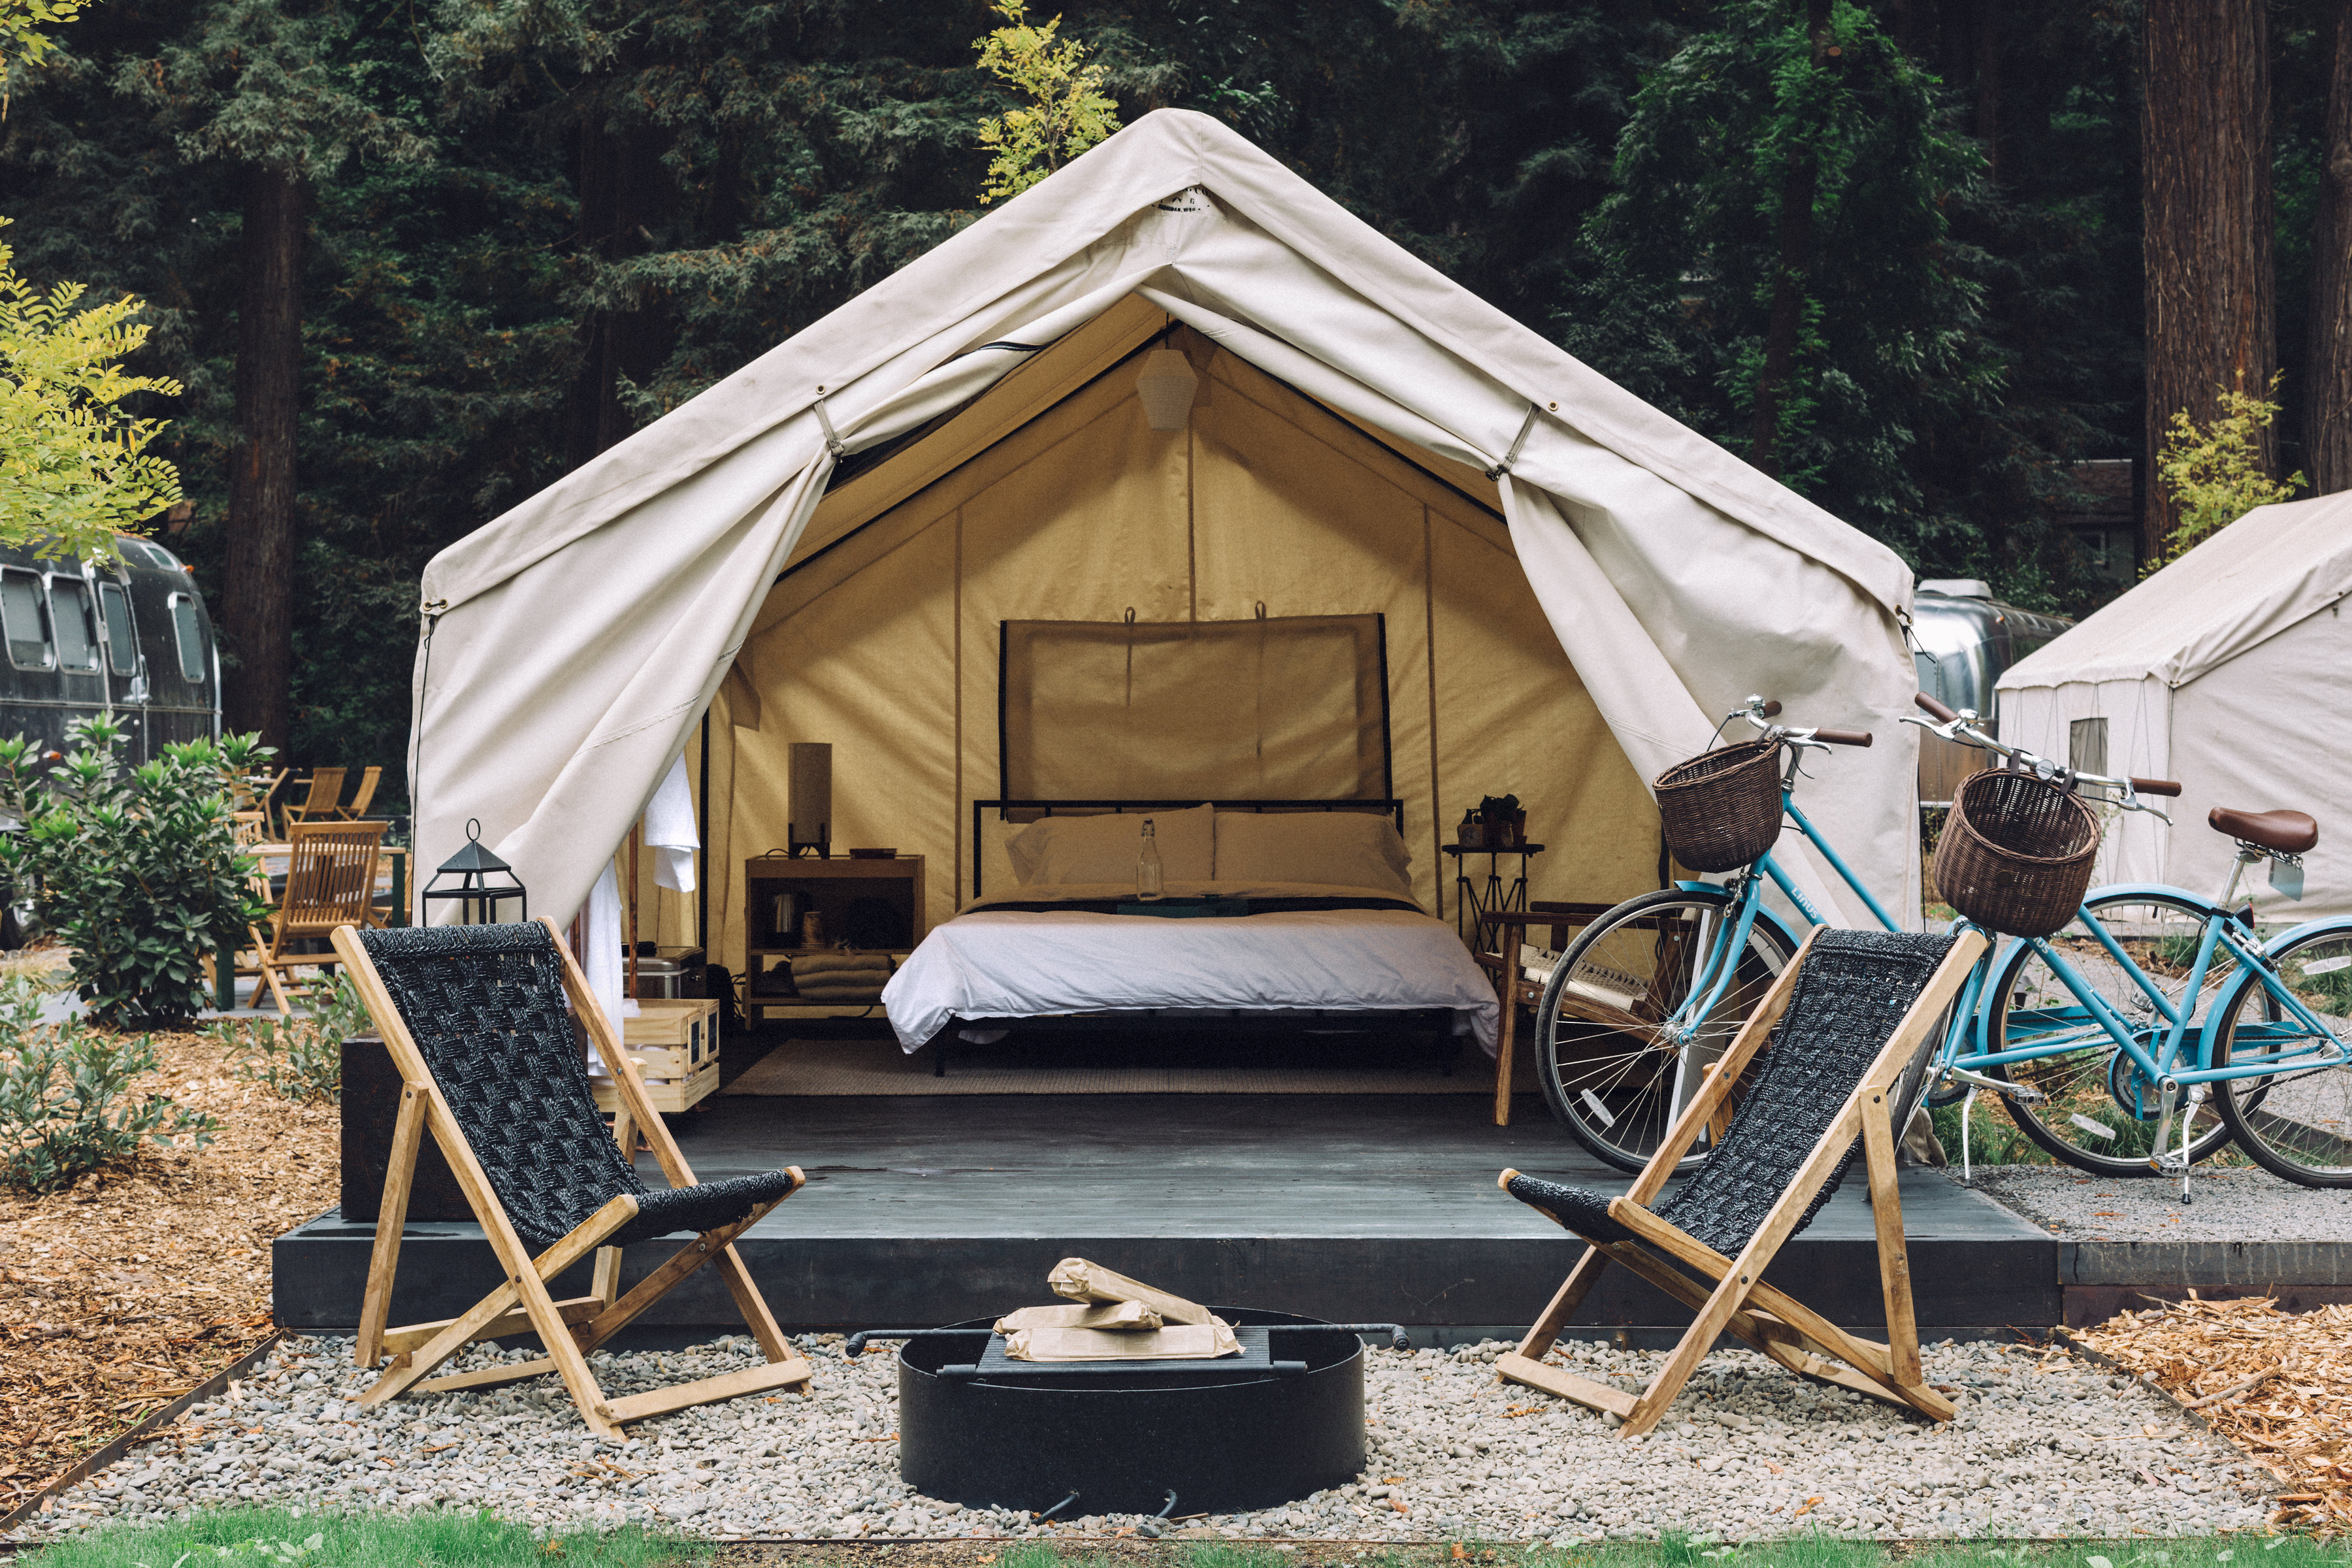 Go glamping in the redwoods of the Russian River at Autocamp in Guerneville, Sonoma County, California